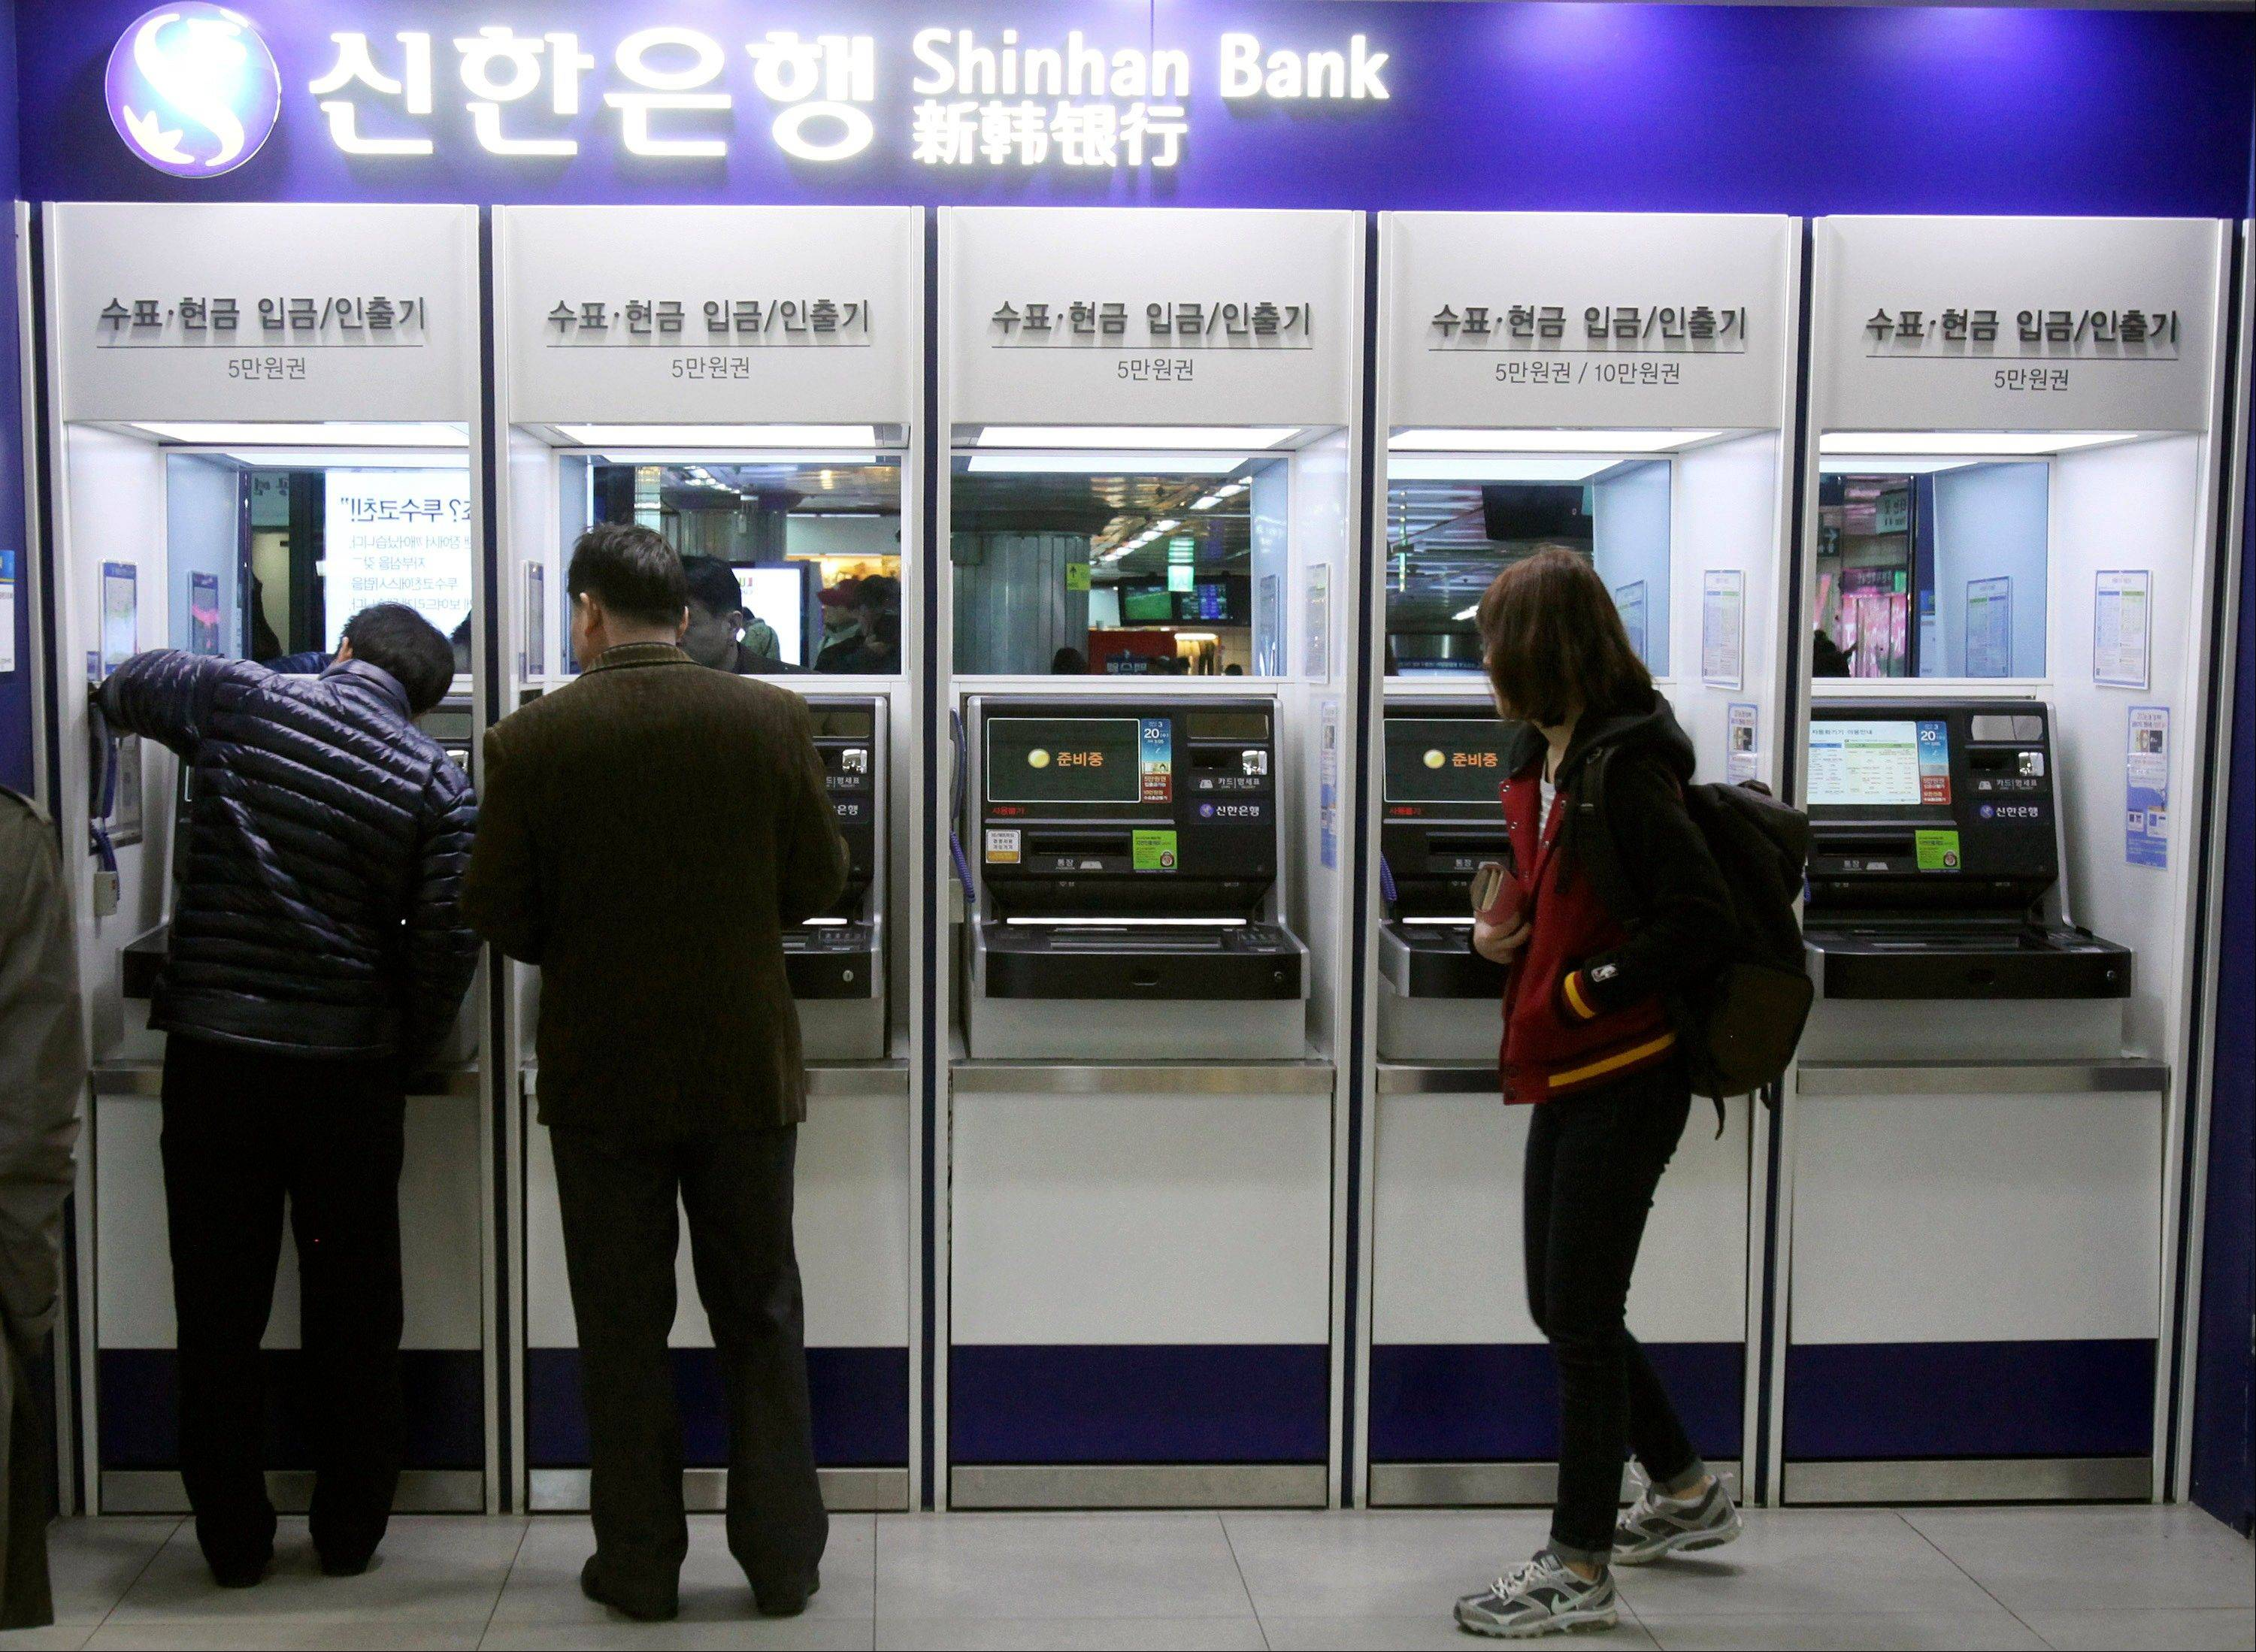 Depositors try to use automated teller machines while the bank's computer networks are paralyzed at a subway station in Seoul, South Korea, Wednesday. Computer networks at two major South Korean banks and three top TV broadcasters went into shutdown mode en masse Wednesday.